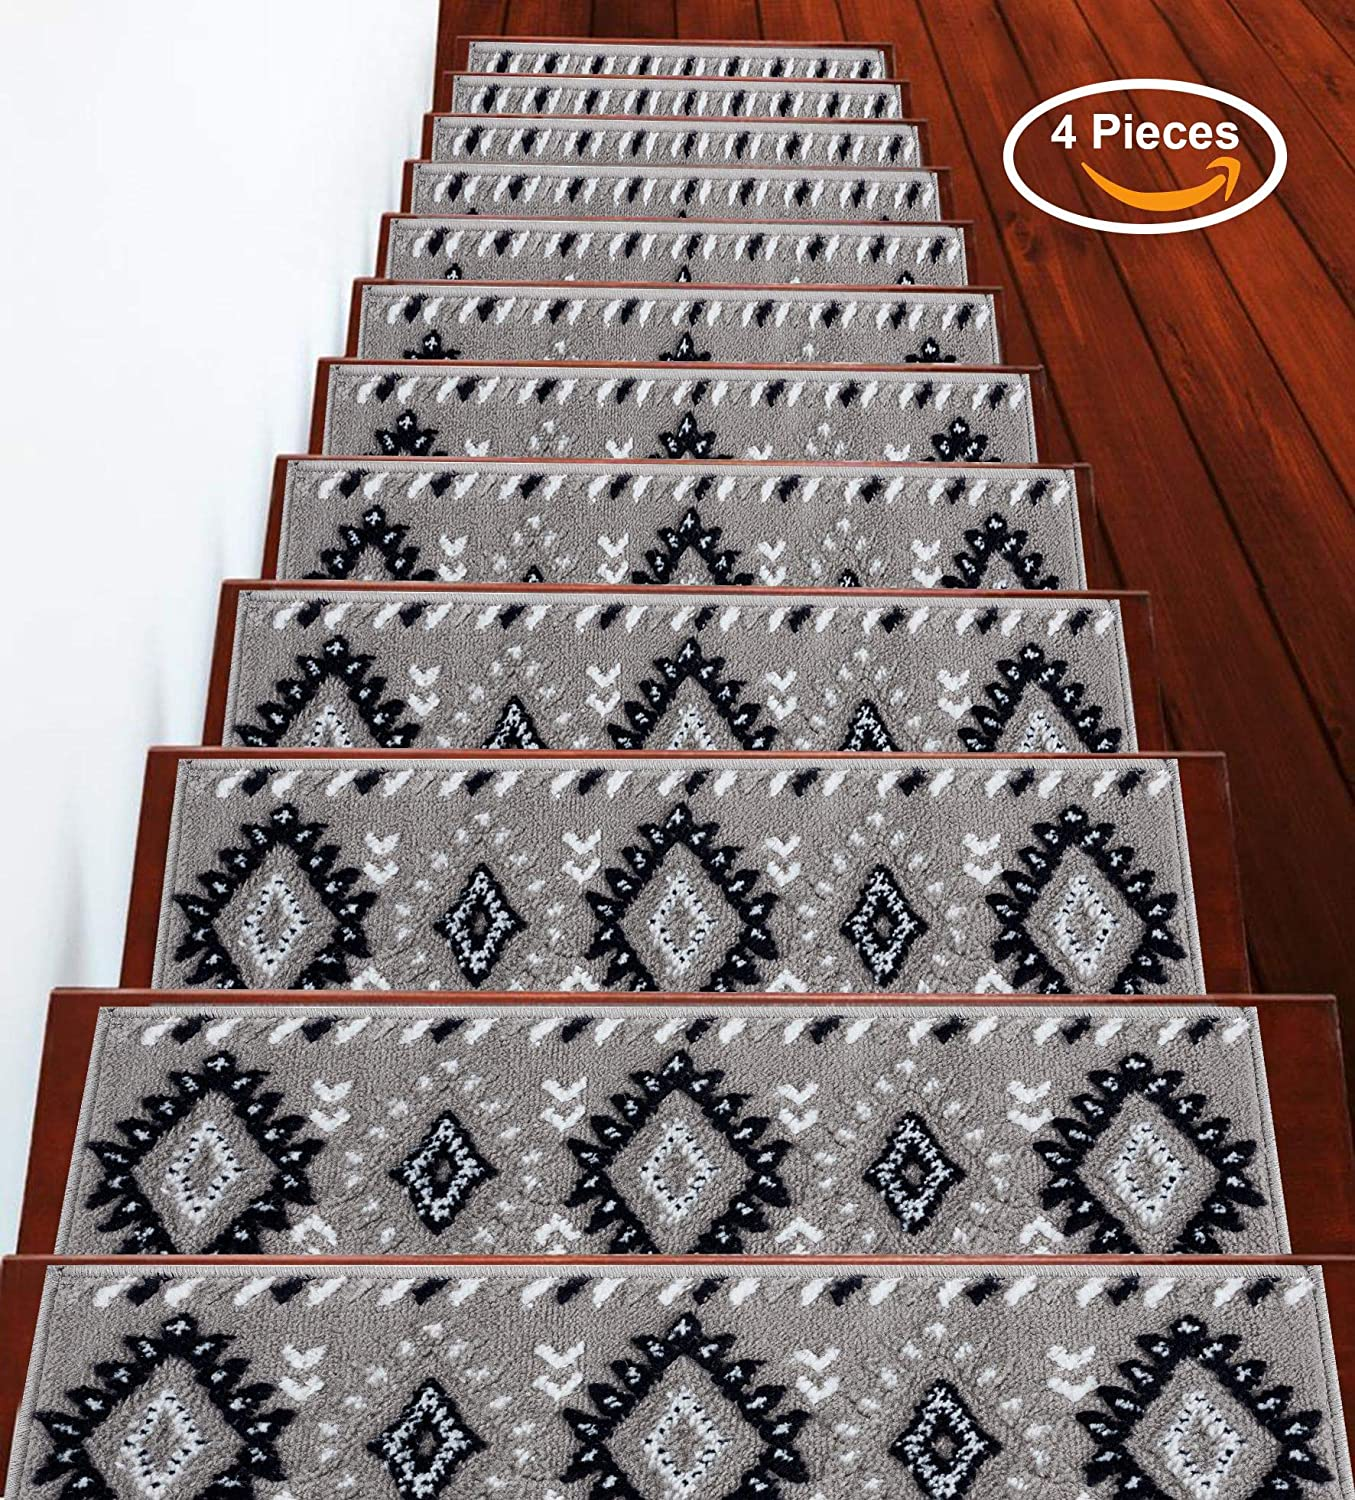 Vibrant and Soft Stair Treads Beige /& White Sussexhome Stair Treads Traditional Collection Contemporary 9 x 28 100/% Polypropylene Cozy Pack of 13